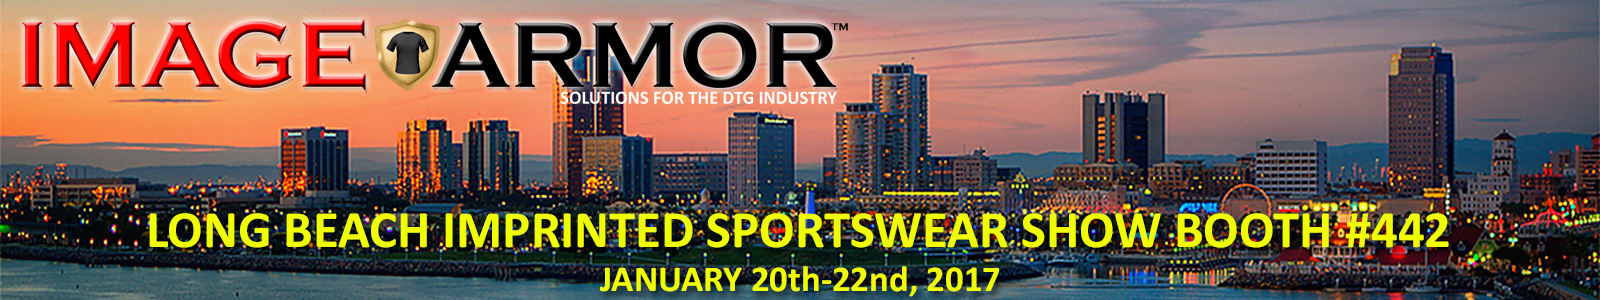 2017 Long Beach Imprinted Sportswear Show Image Armor